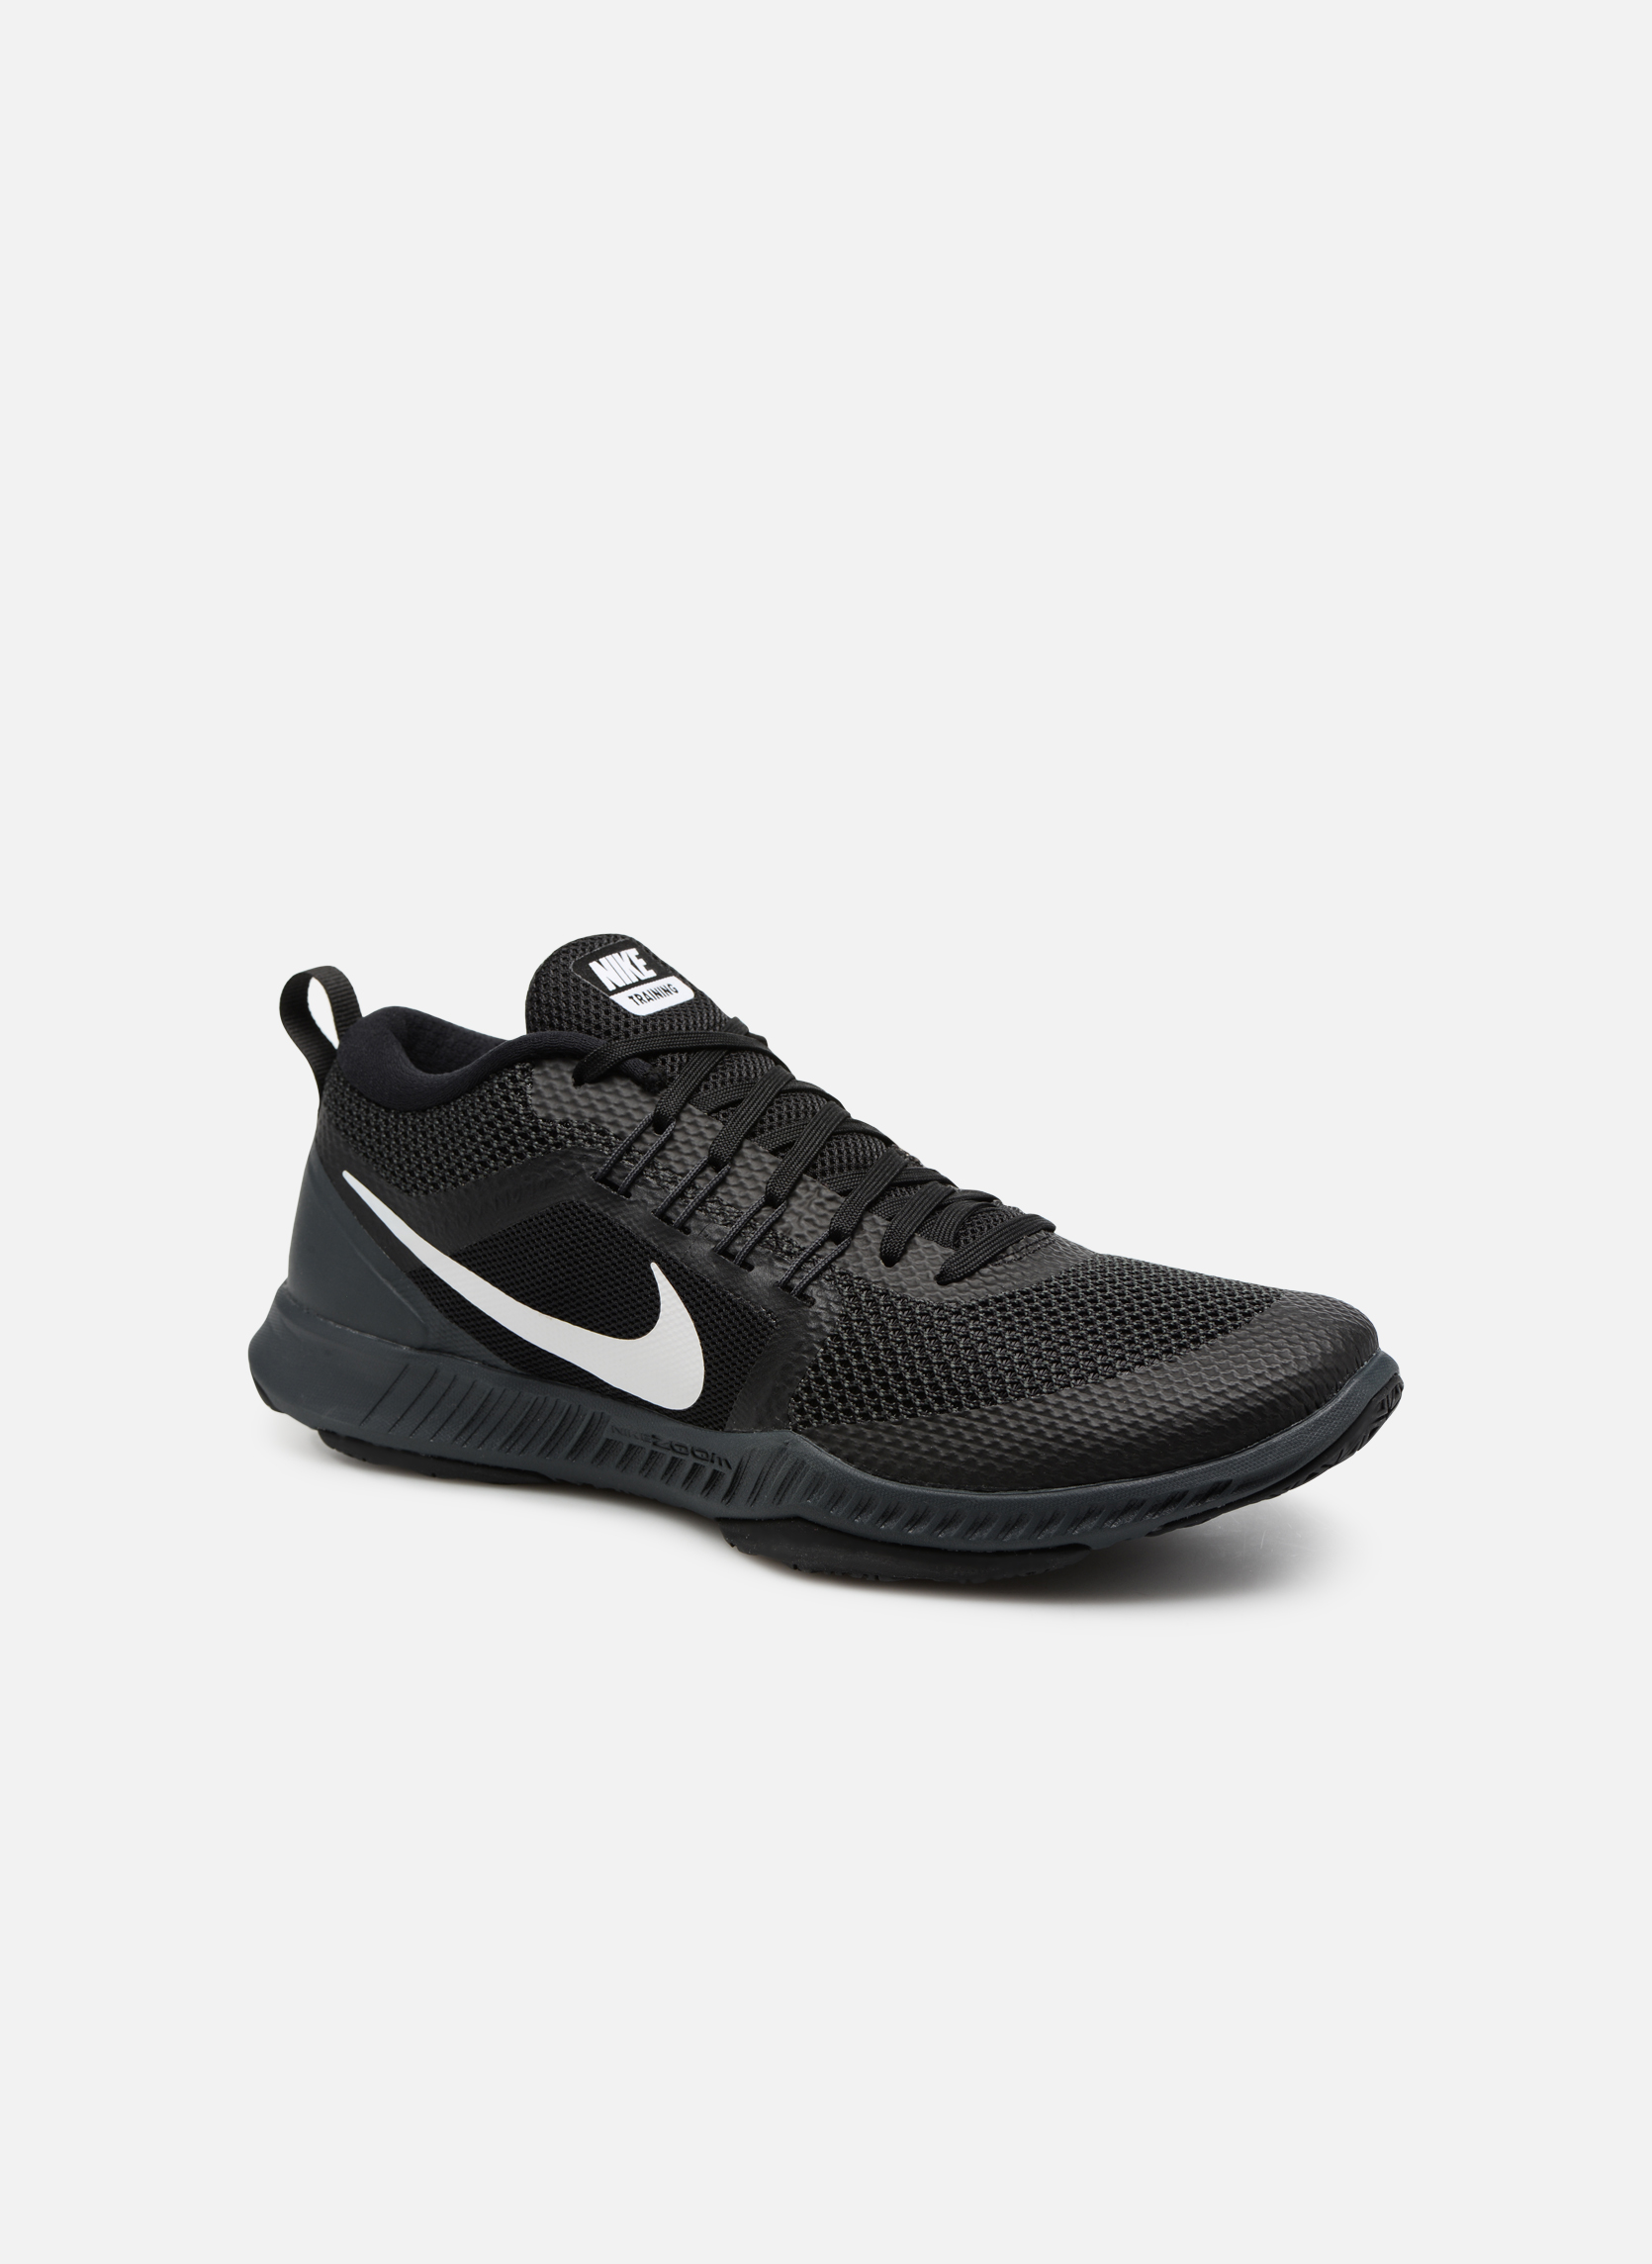 Nike Zoom Domination TR Black/White/Anthracite SK14862